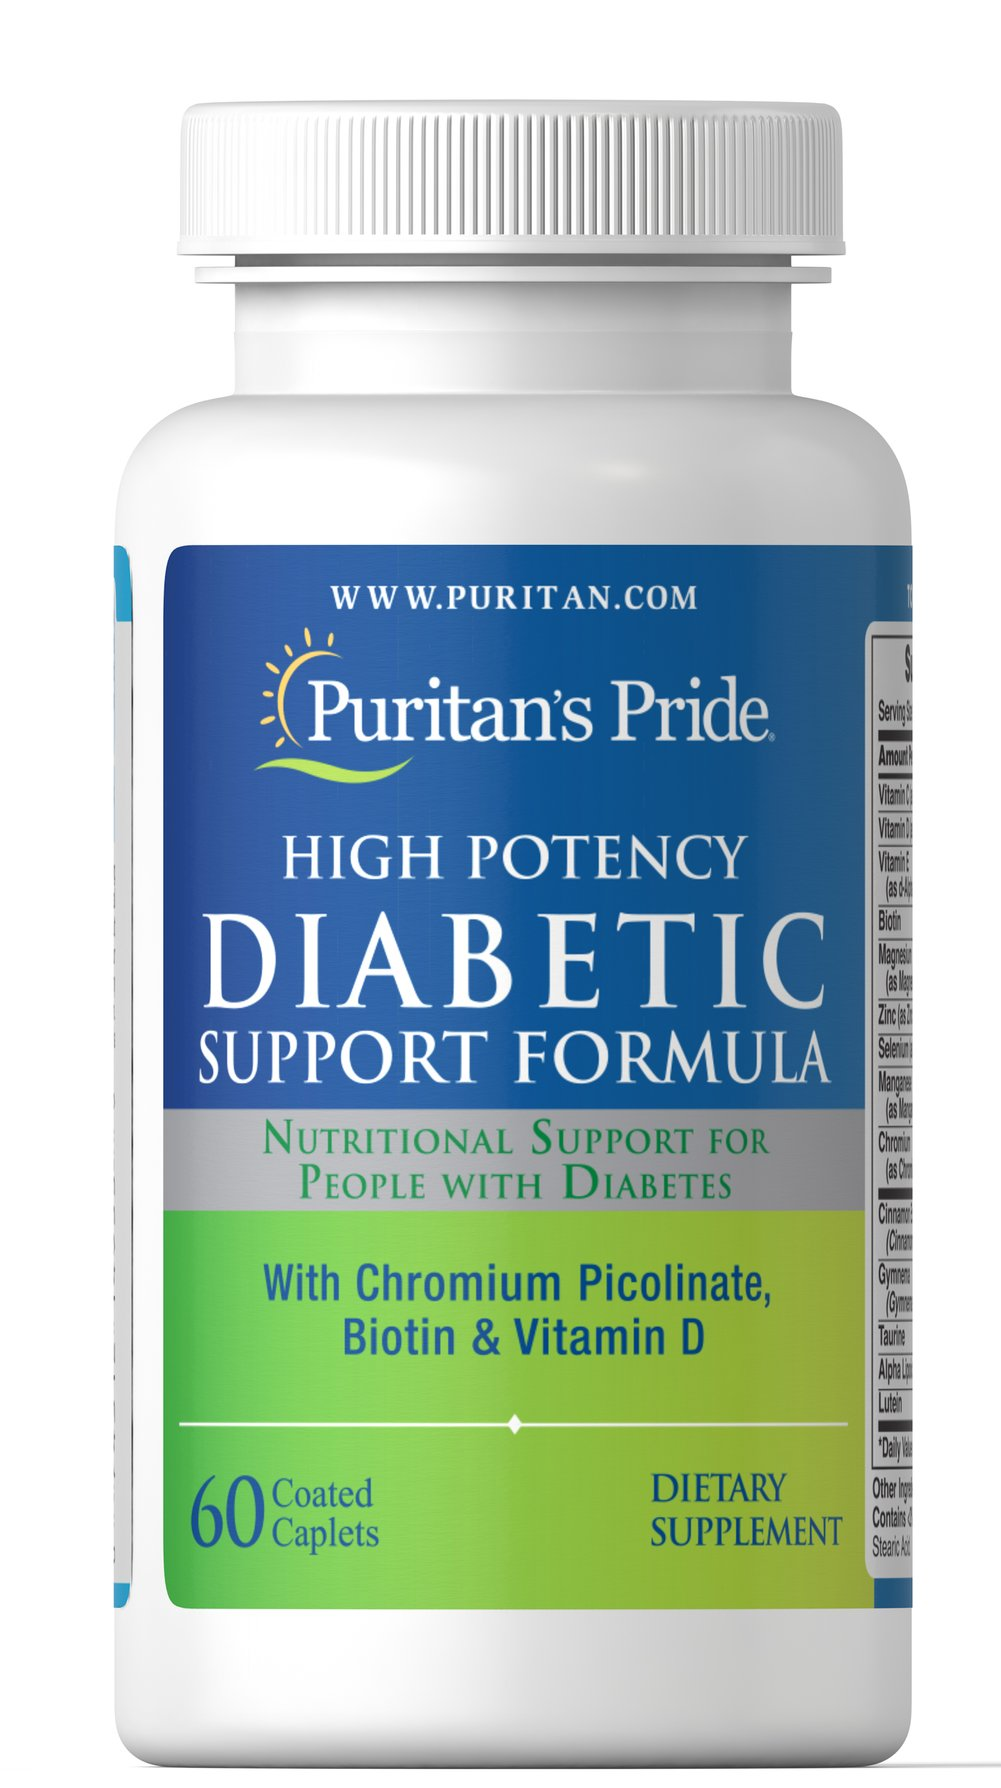 Diabetic Support Formula <p>These high-potency tablets contain a synergistic blend of Chromium Picolinate, Lipoic Acid, Ginkgo Biloba, Coenzyme Q-10, and other nutrients. Diabetics/Hypoglycemics: Use only under a doctor's supervision because this product contains Chromium which may enhance insulin sensitivity and may affect your blood glucose levels.</p> 60 Caplets  $29.99